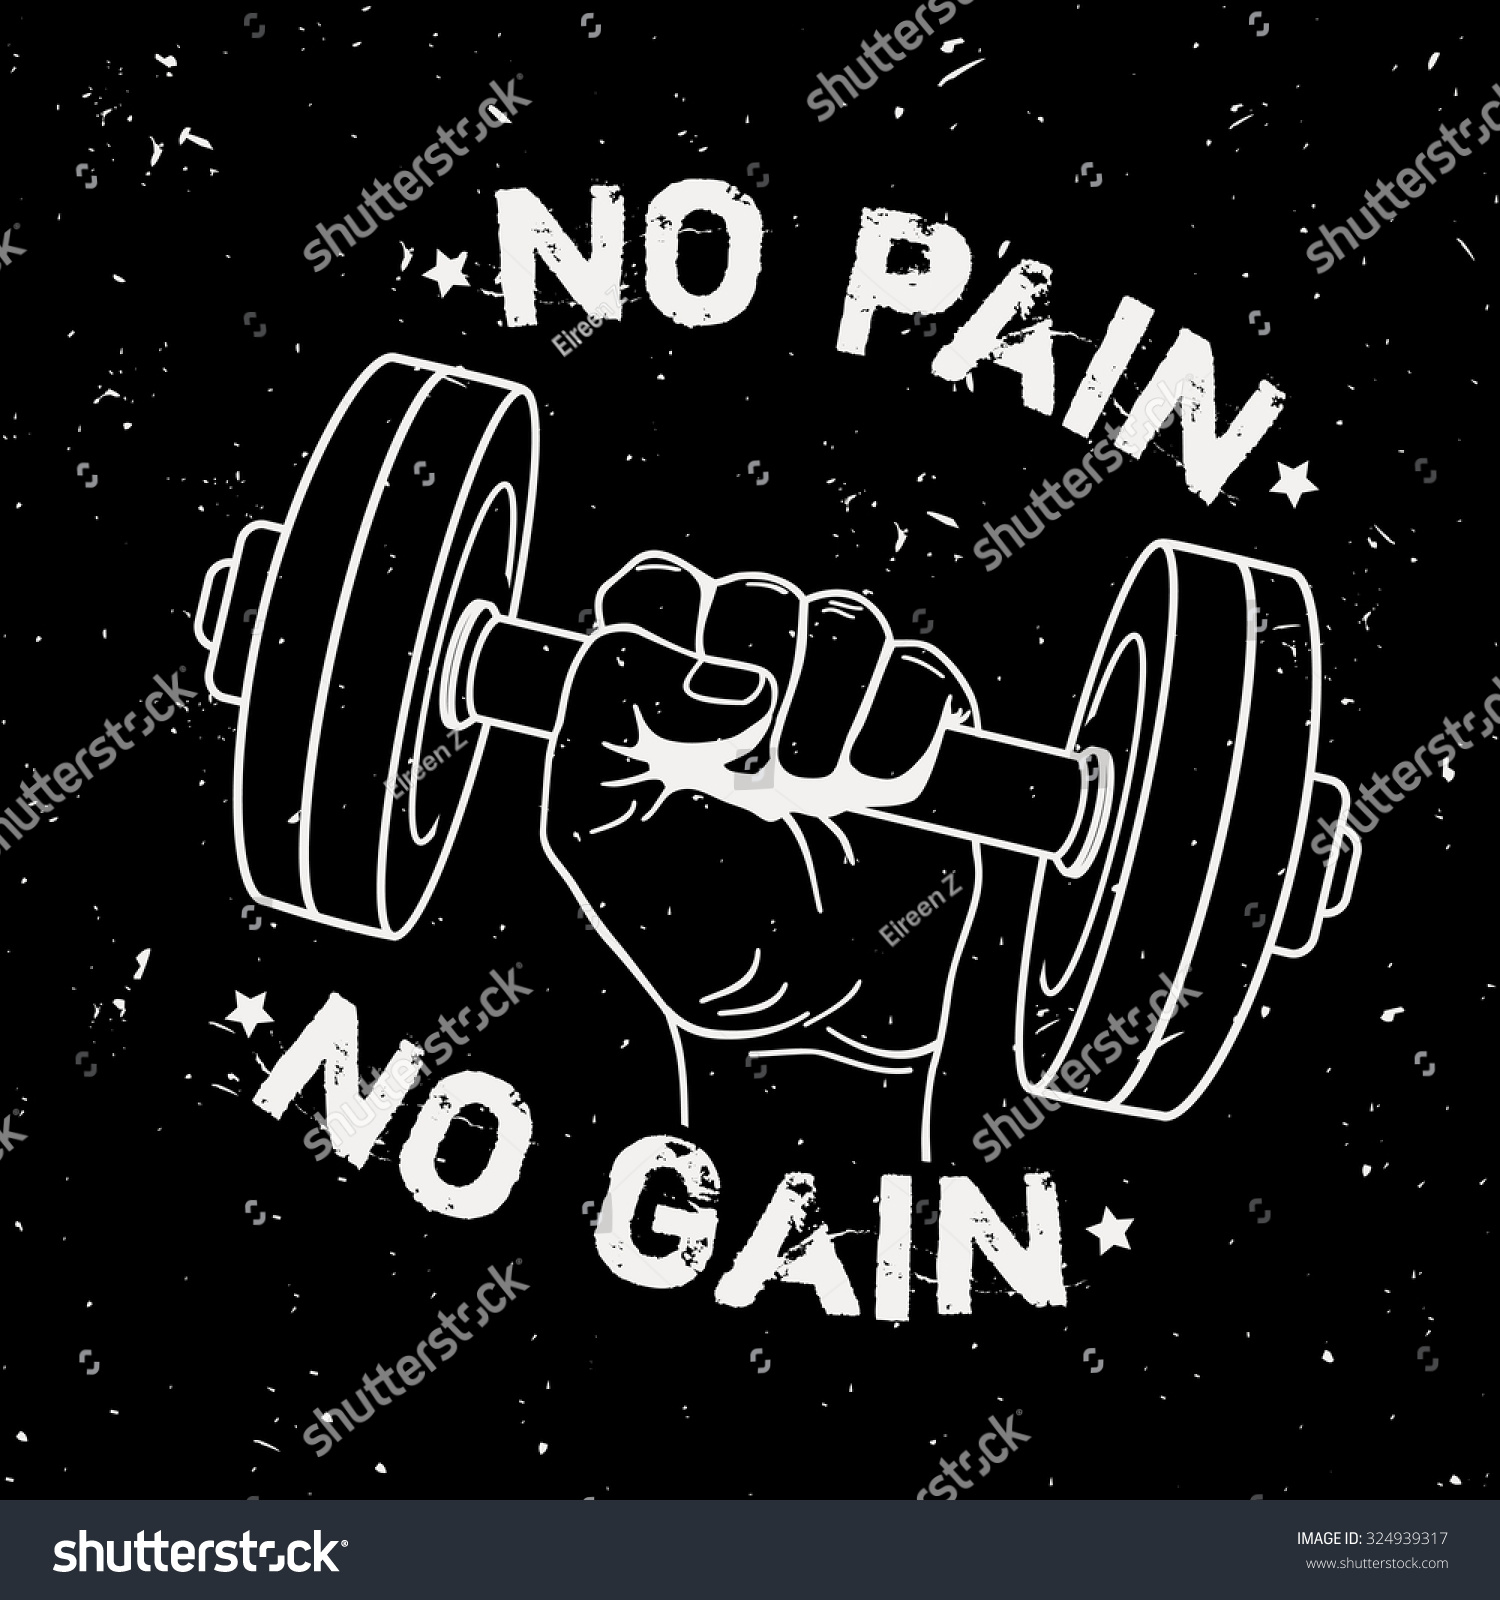 no pain gain wallpapers - photo #16